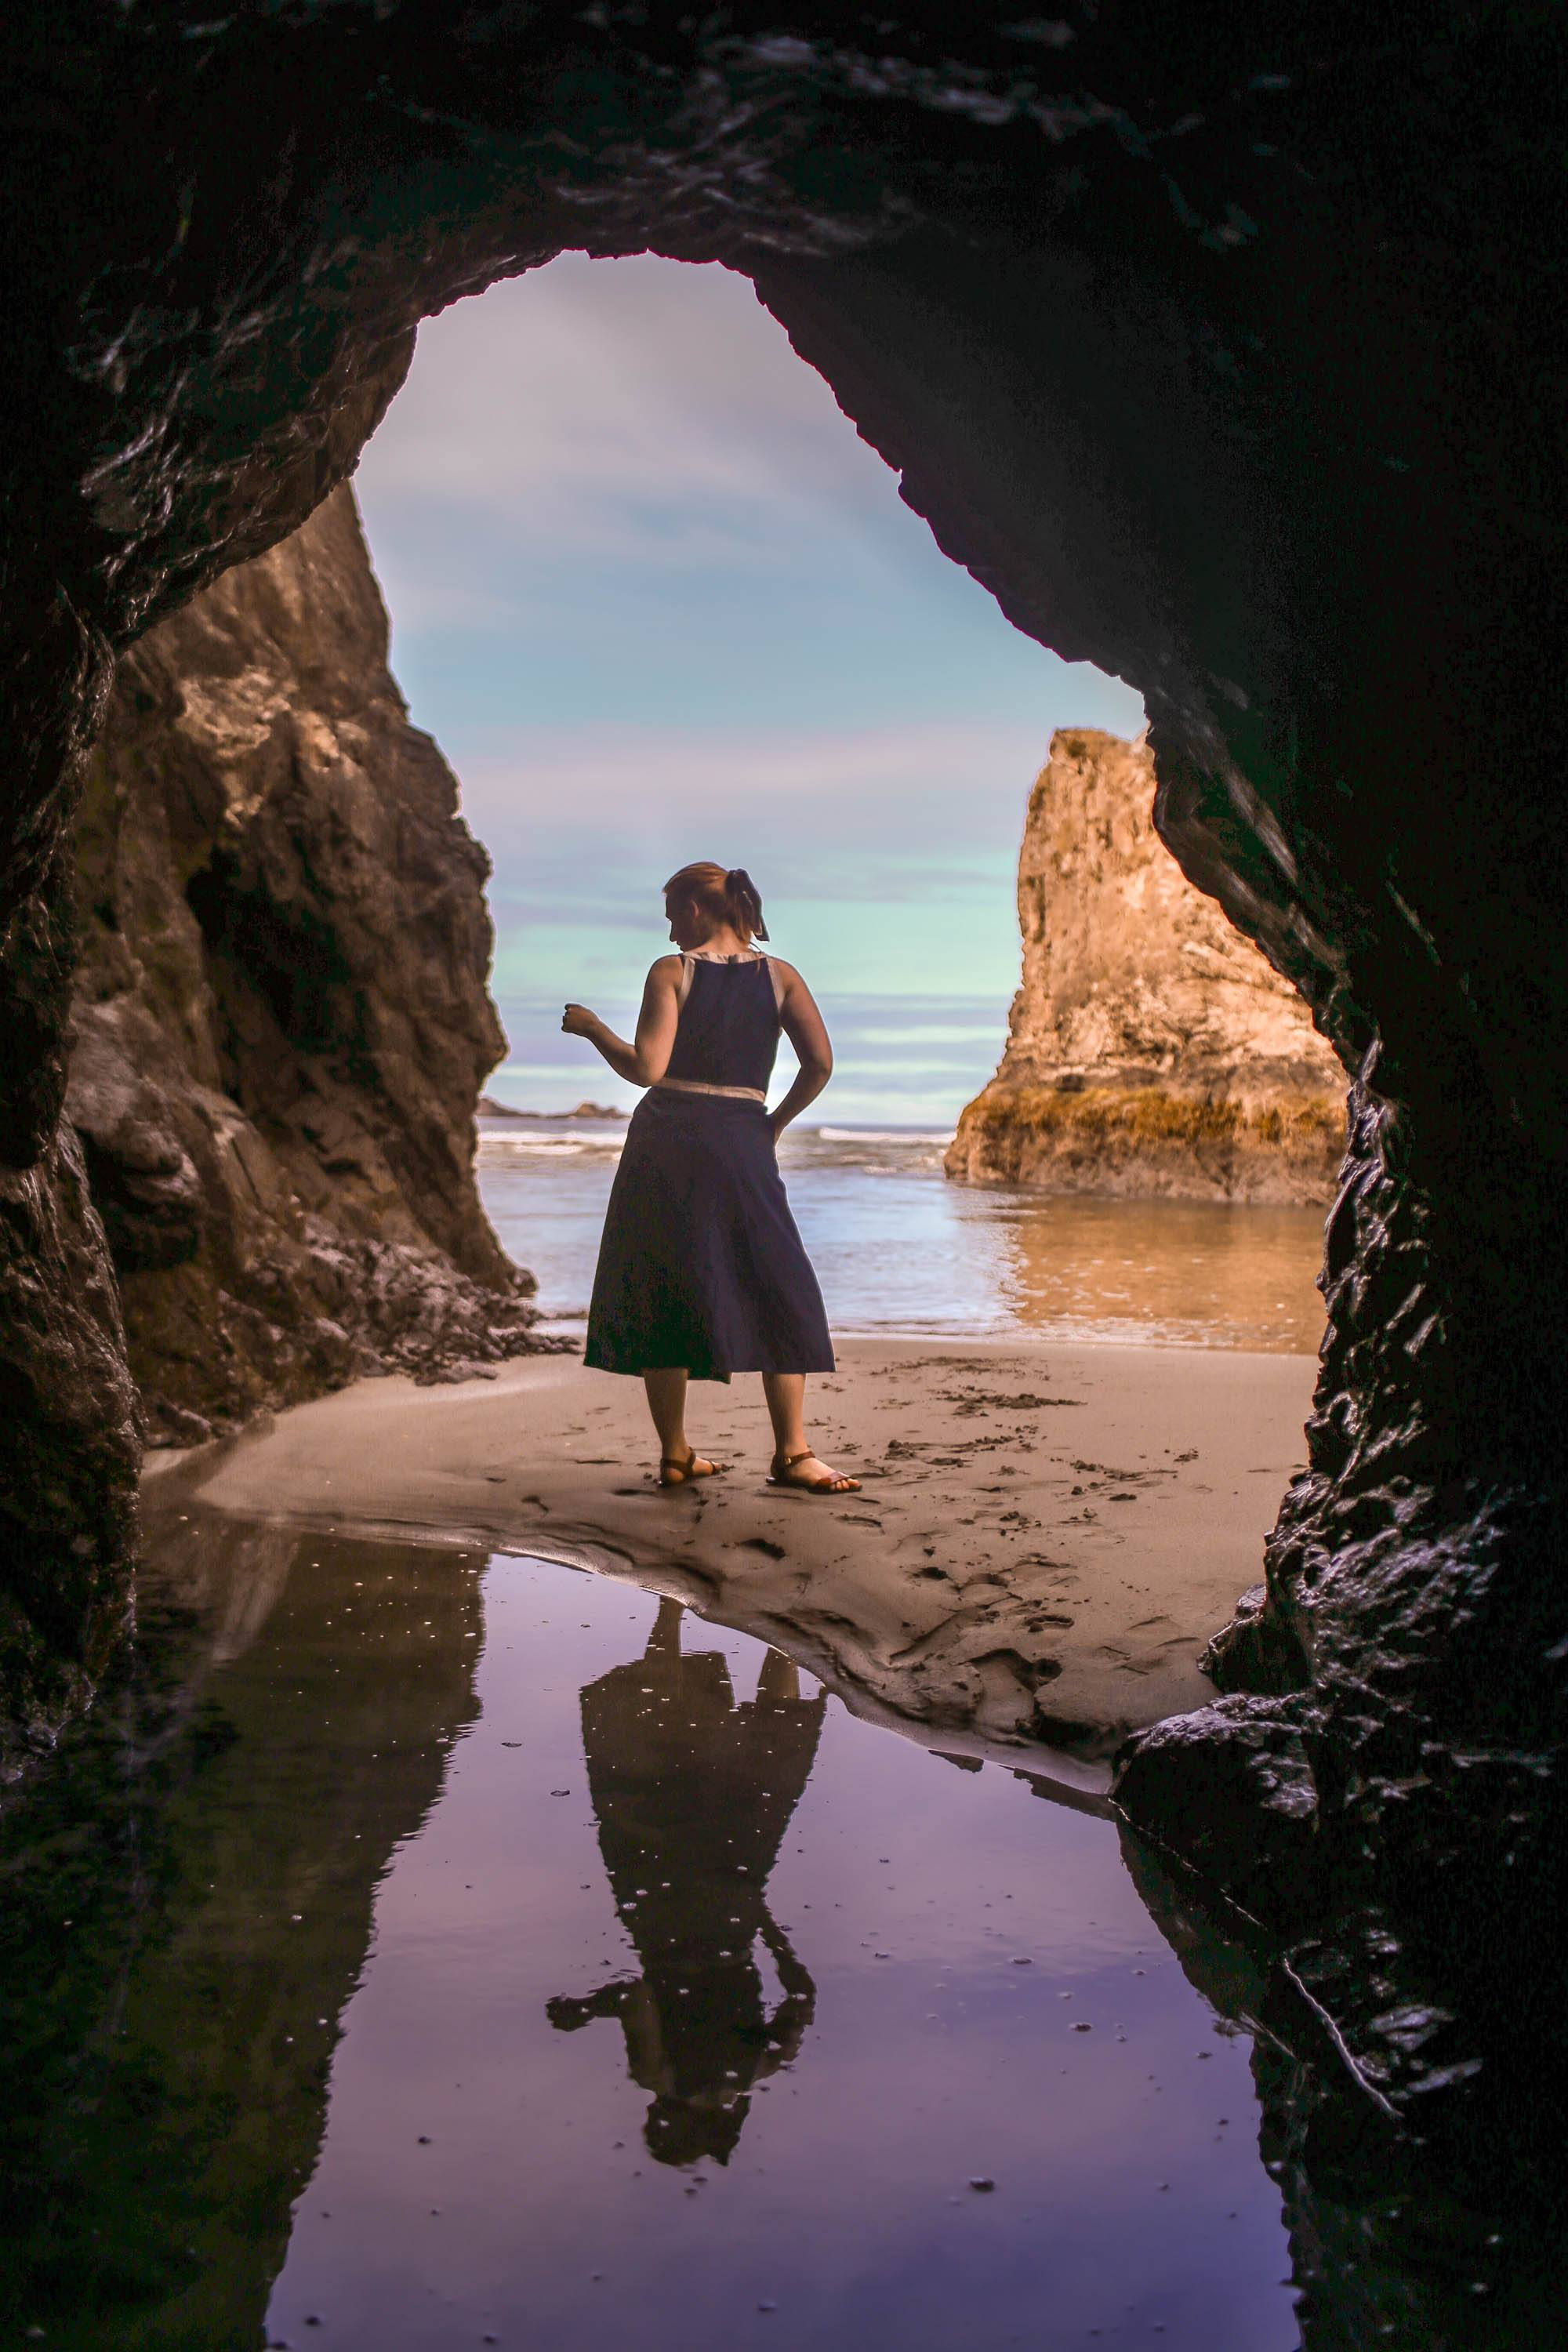 Woman in blue dress standing on beach through cave opening